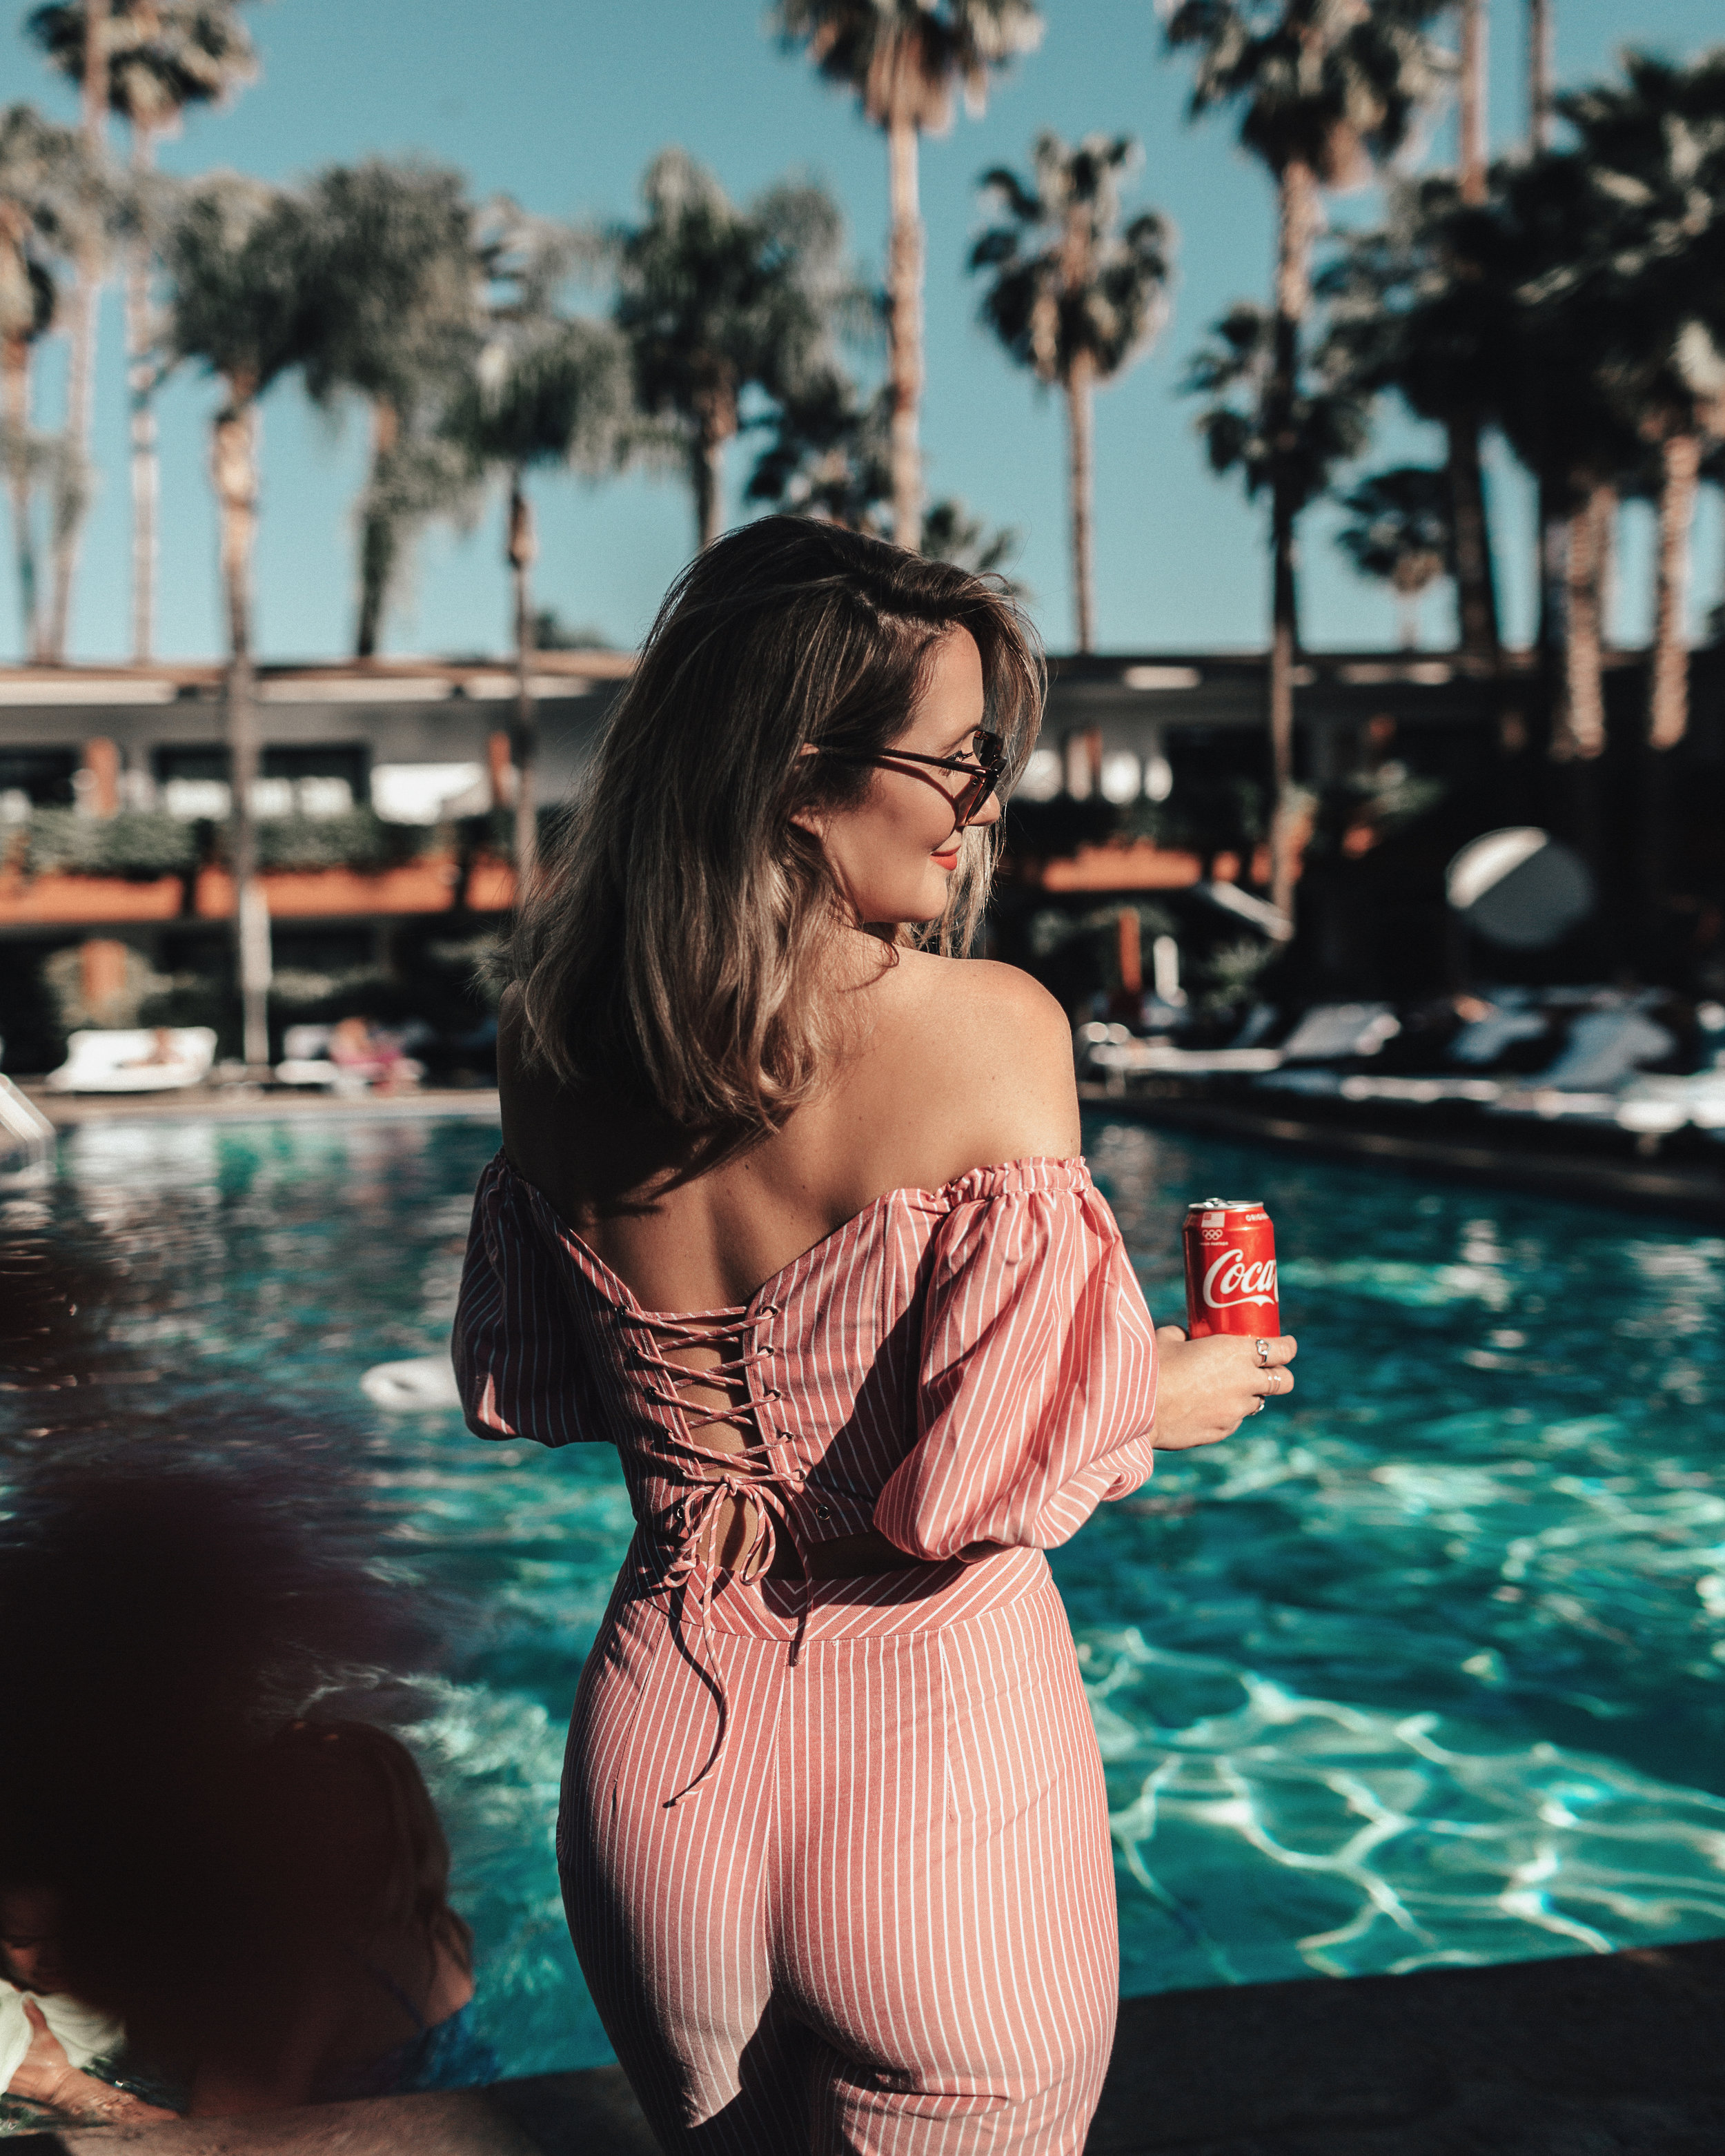 Spring style ideas // Los Angeles fashion blog // The Style Sauce // Pool style ideas // resort fashion // vacation style ideas // #womensfashion #springstyle #nordstrom